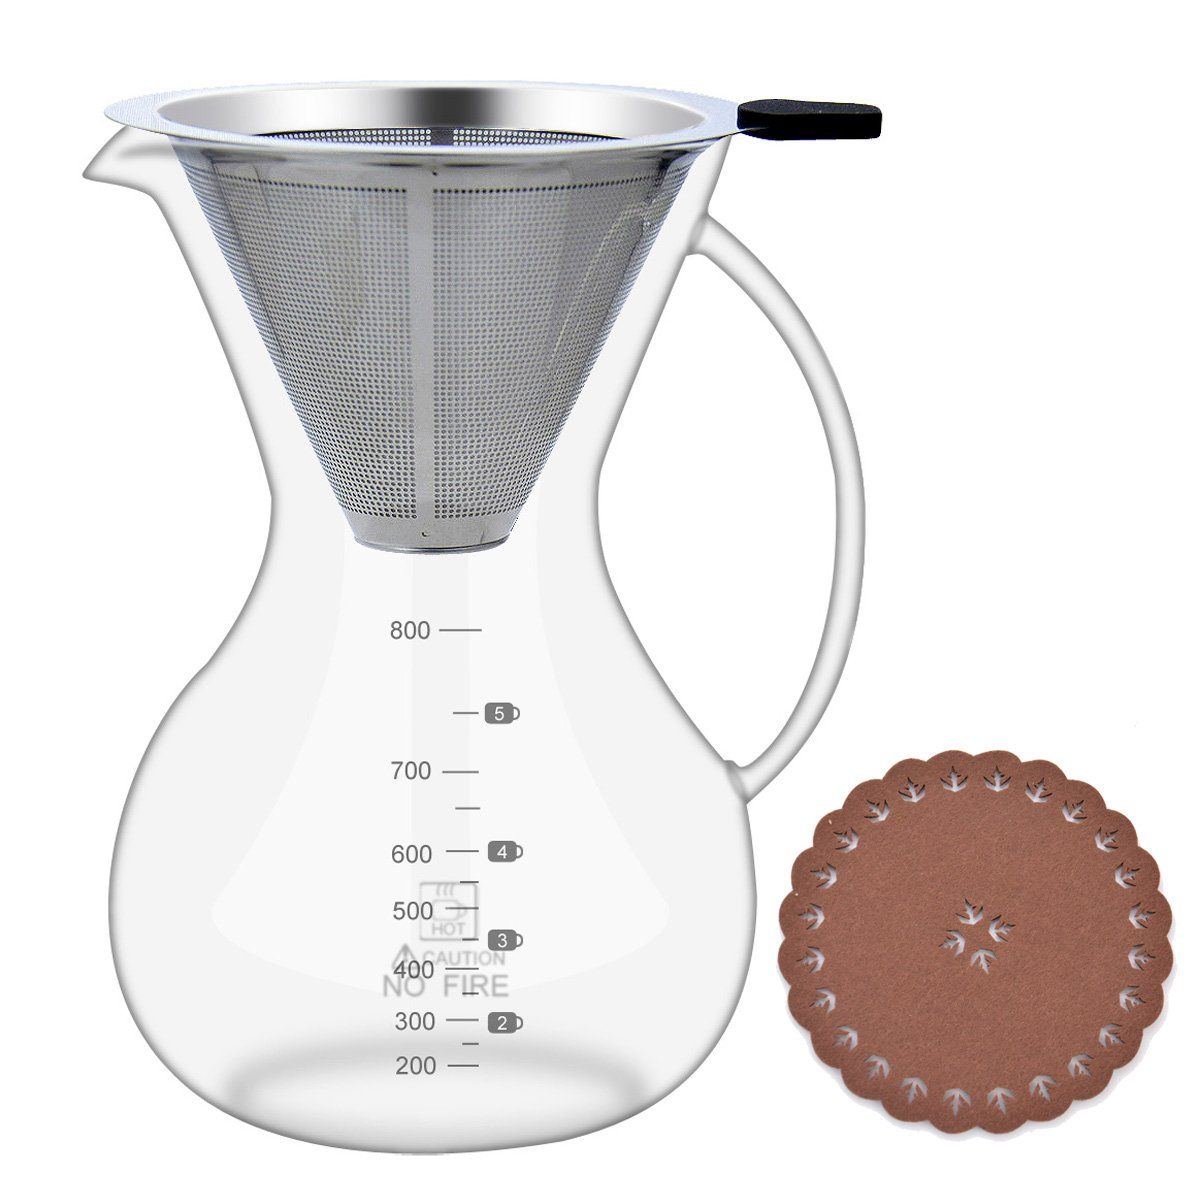 For Coffee Gator 10floz//300ml and 14floz//400ml Pour Over Brewers Coffee Gator Micro-mesh Stainless Steel Coffee Filter Fits Most Tea And Coffee Cups